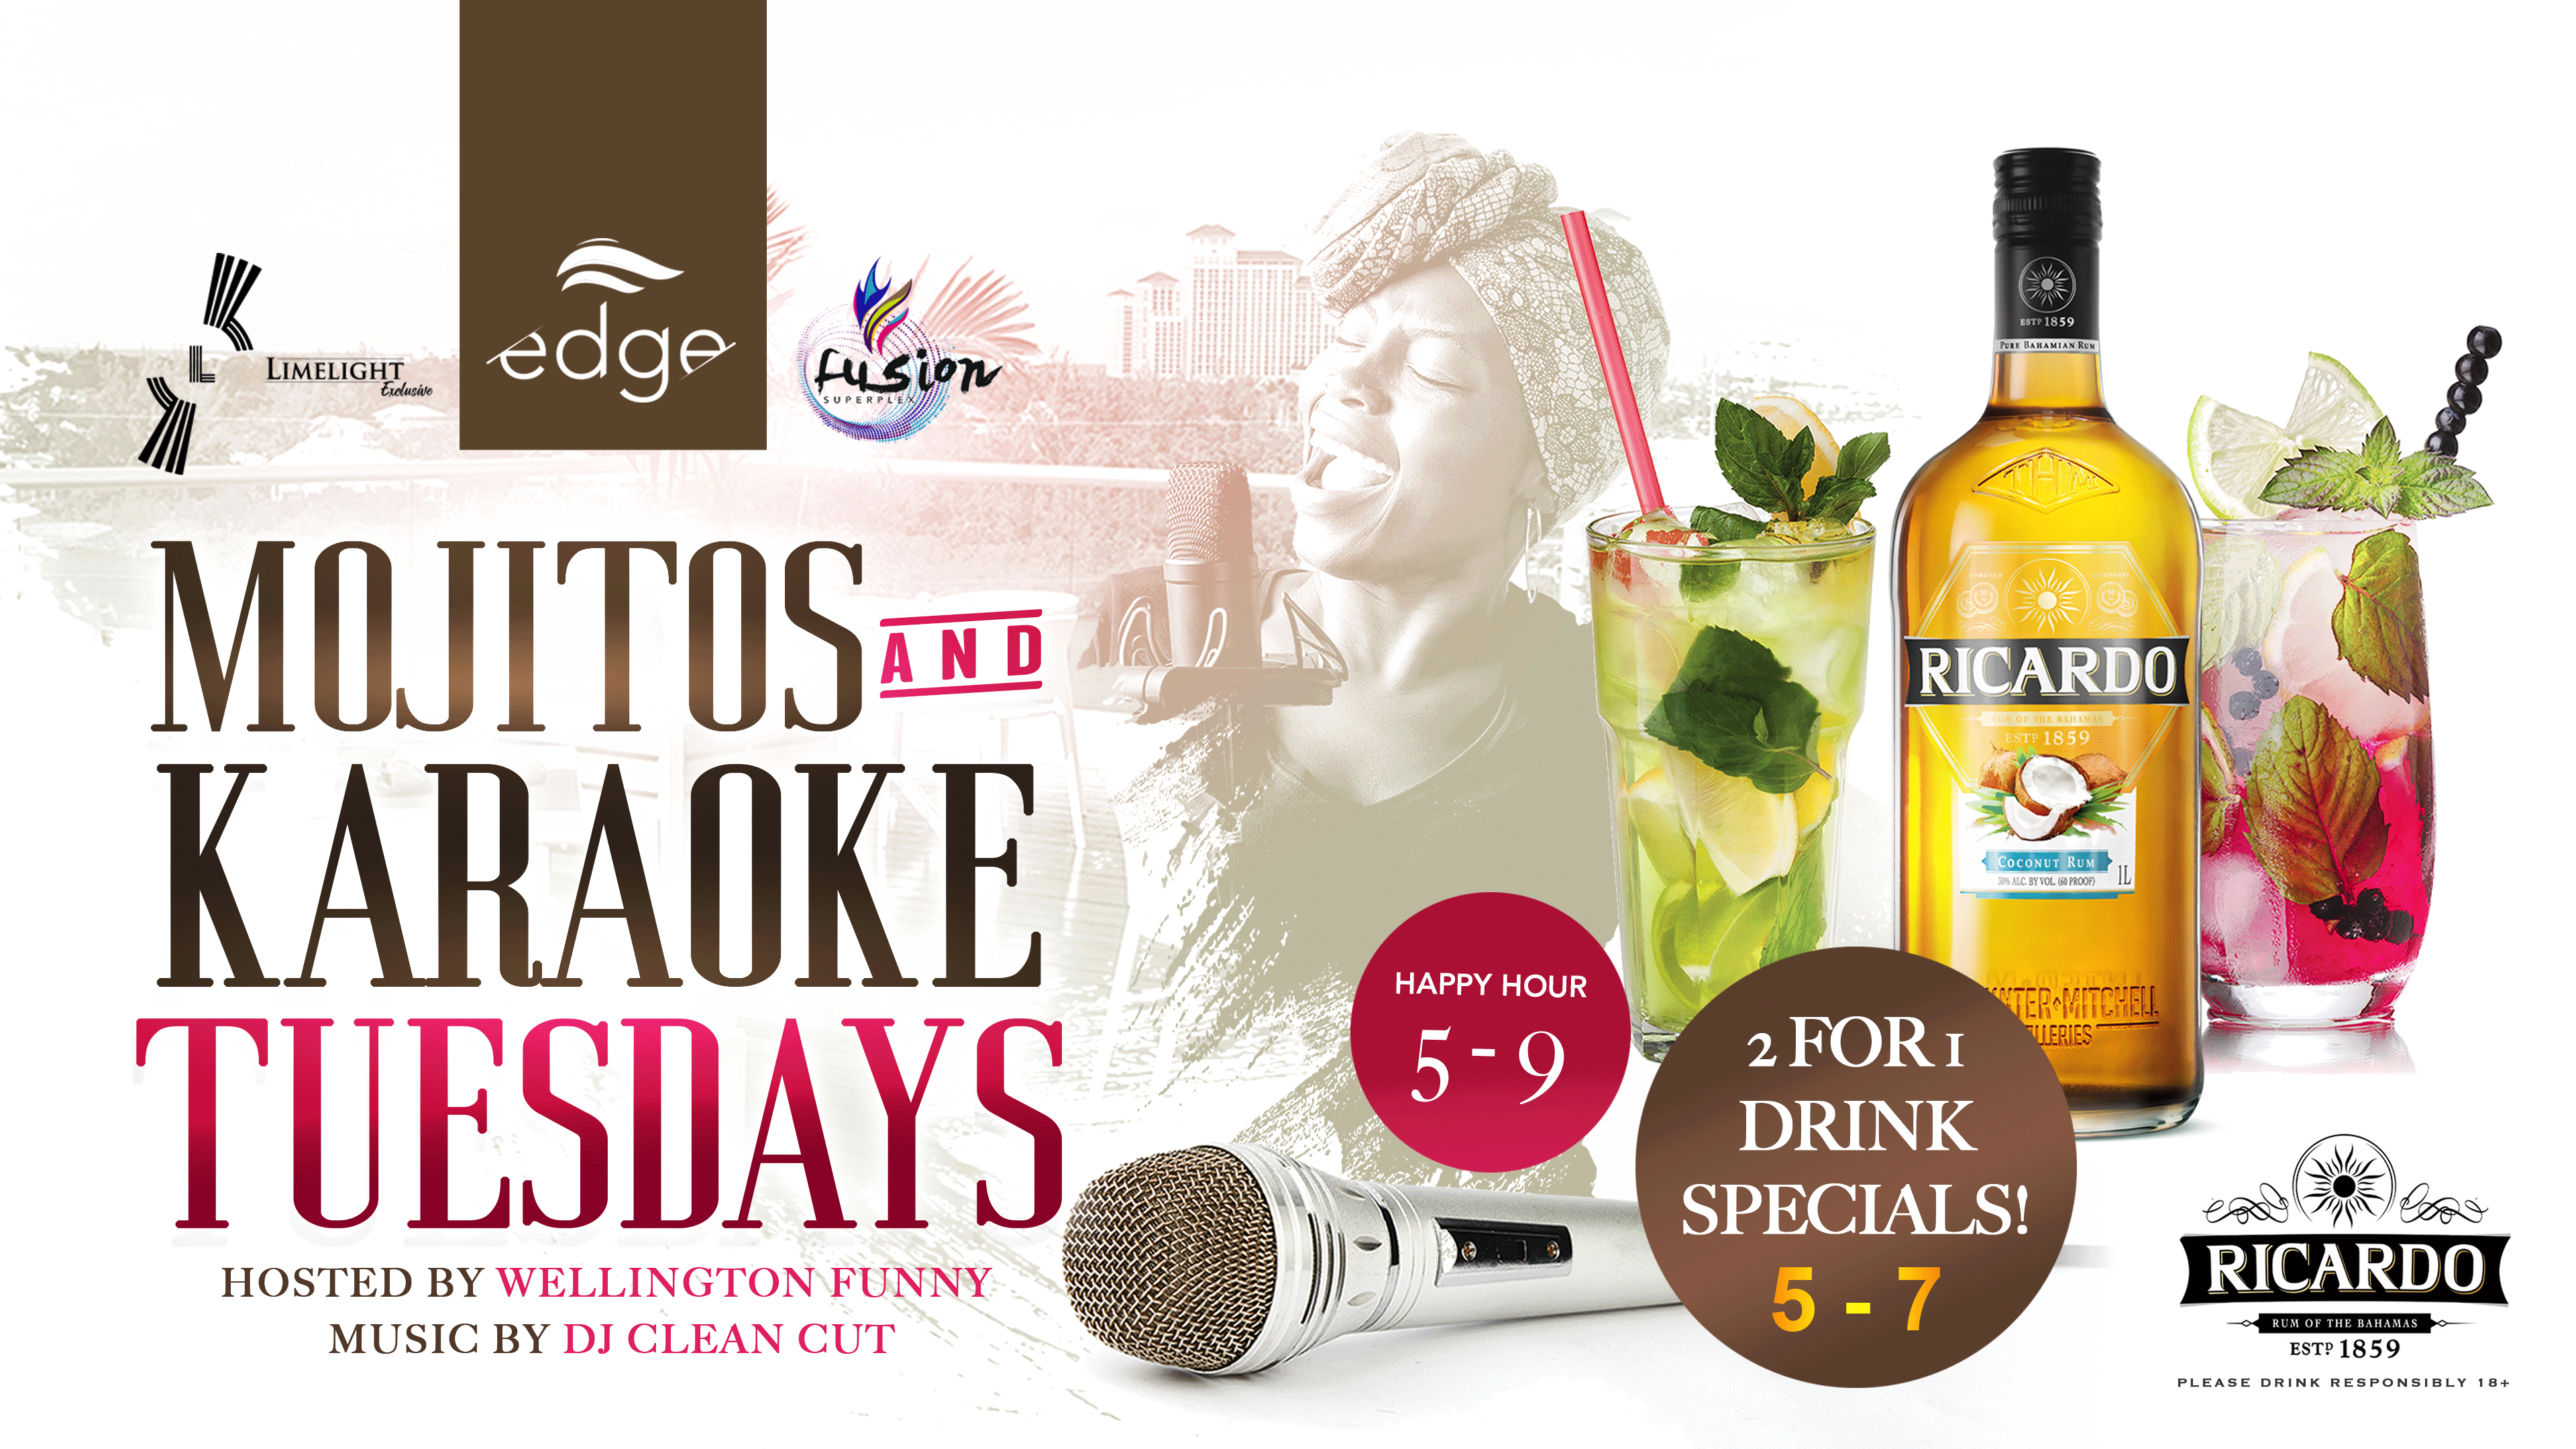 Mojistos and Karaoke Tuesdays at Fusion Superplex